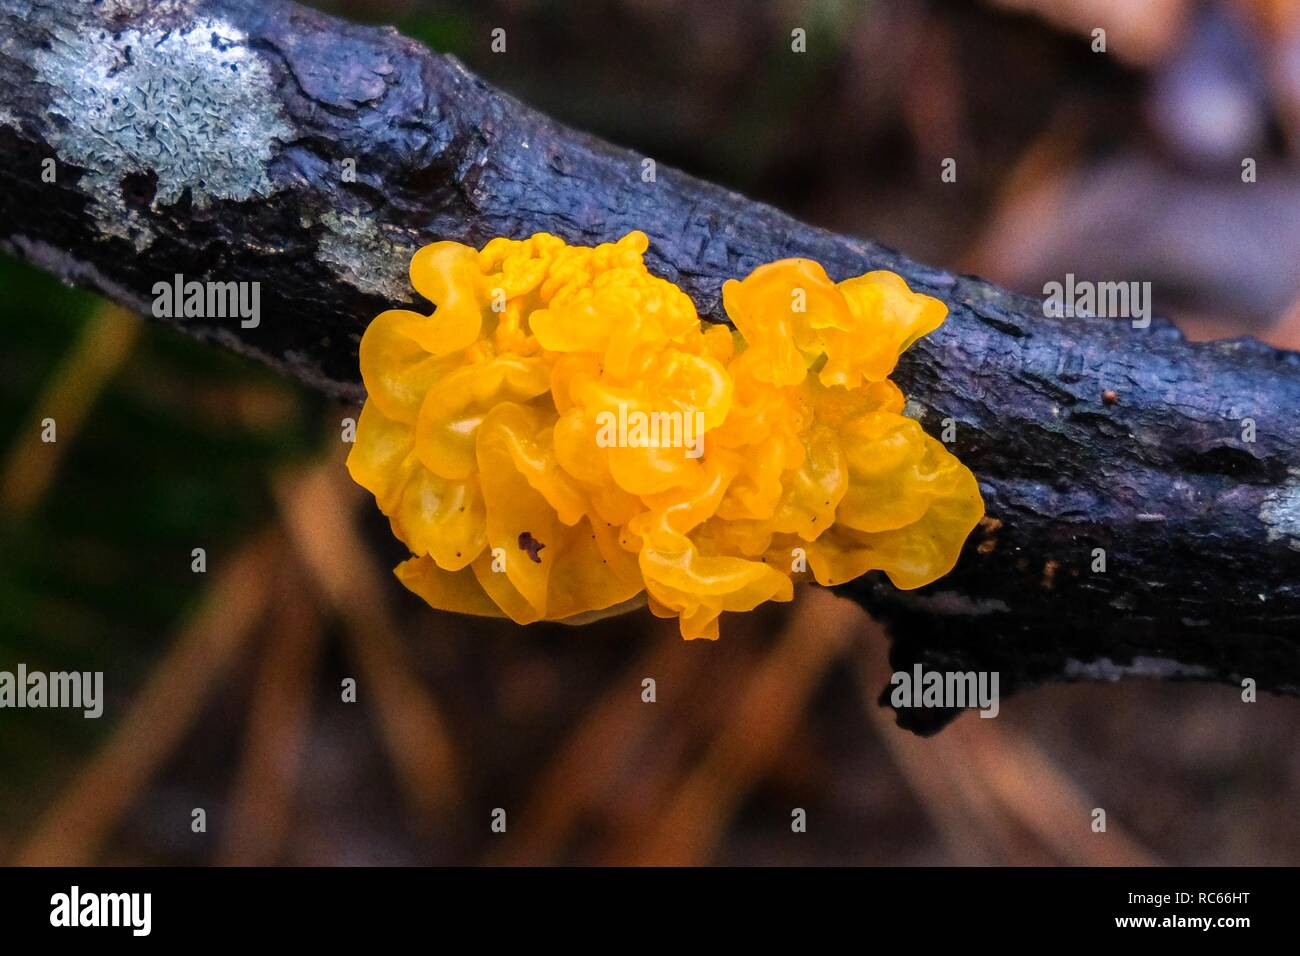 Witches' butter, also known as yellow brain, golden jelly fungus, yellow trembler, growing on a deciduous stick in the forest at Crowder County Park - Stock Image